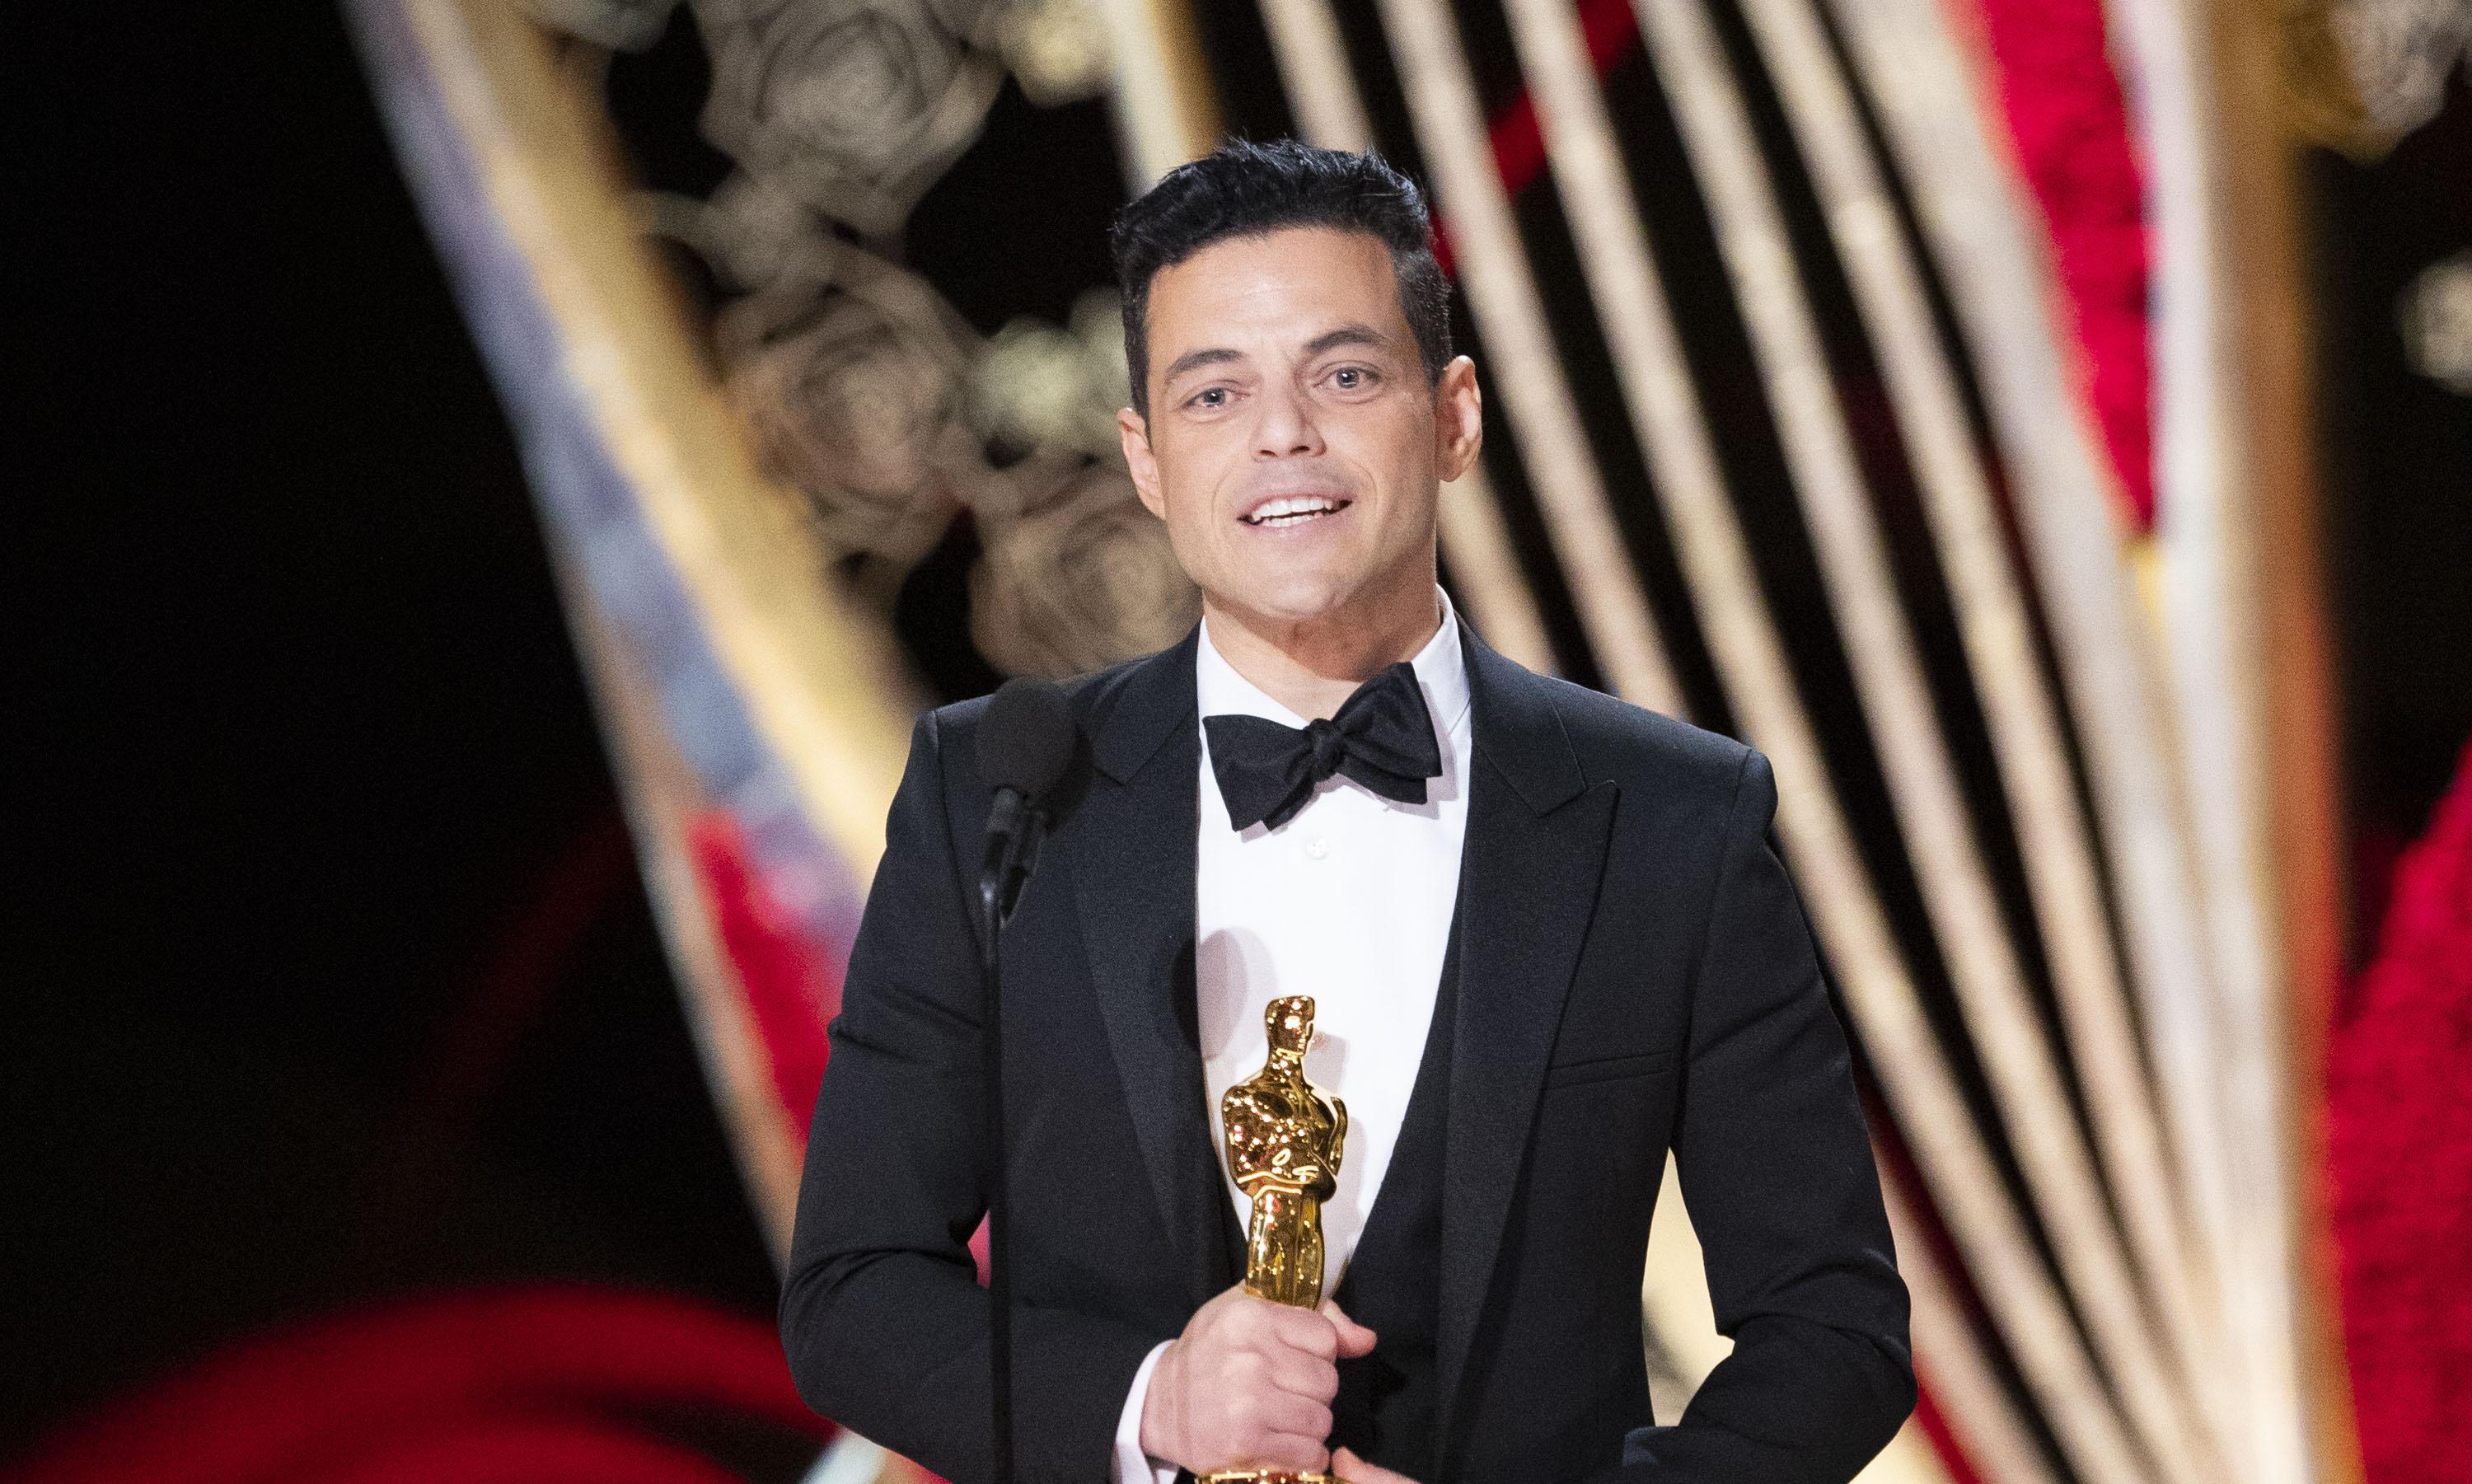 Oscar winner Rami Malek: the first best actor of Arab heritage